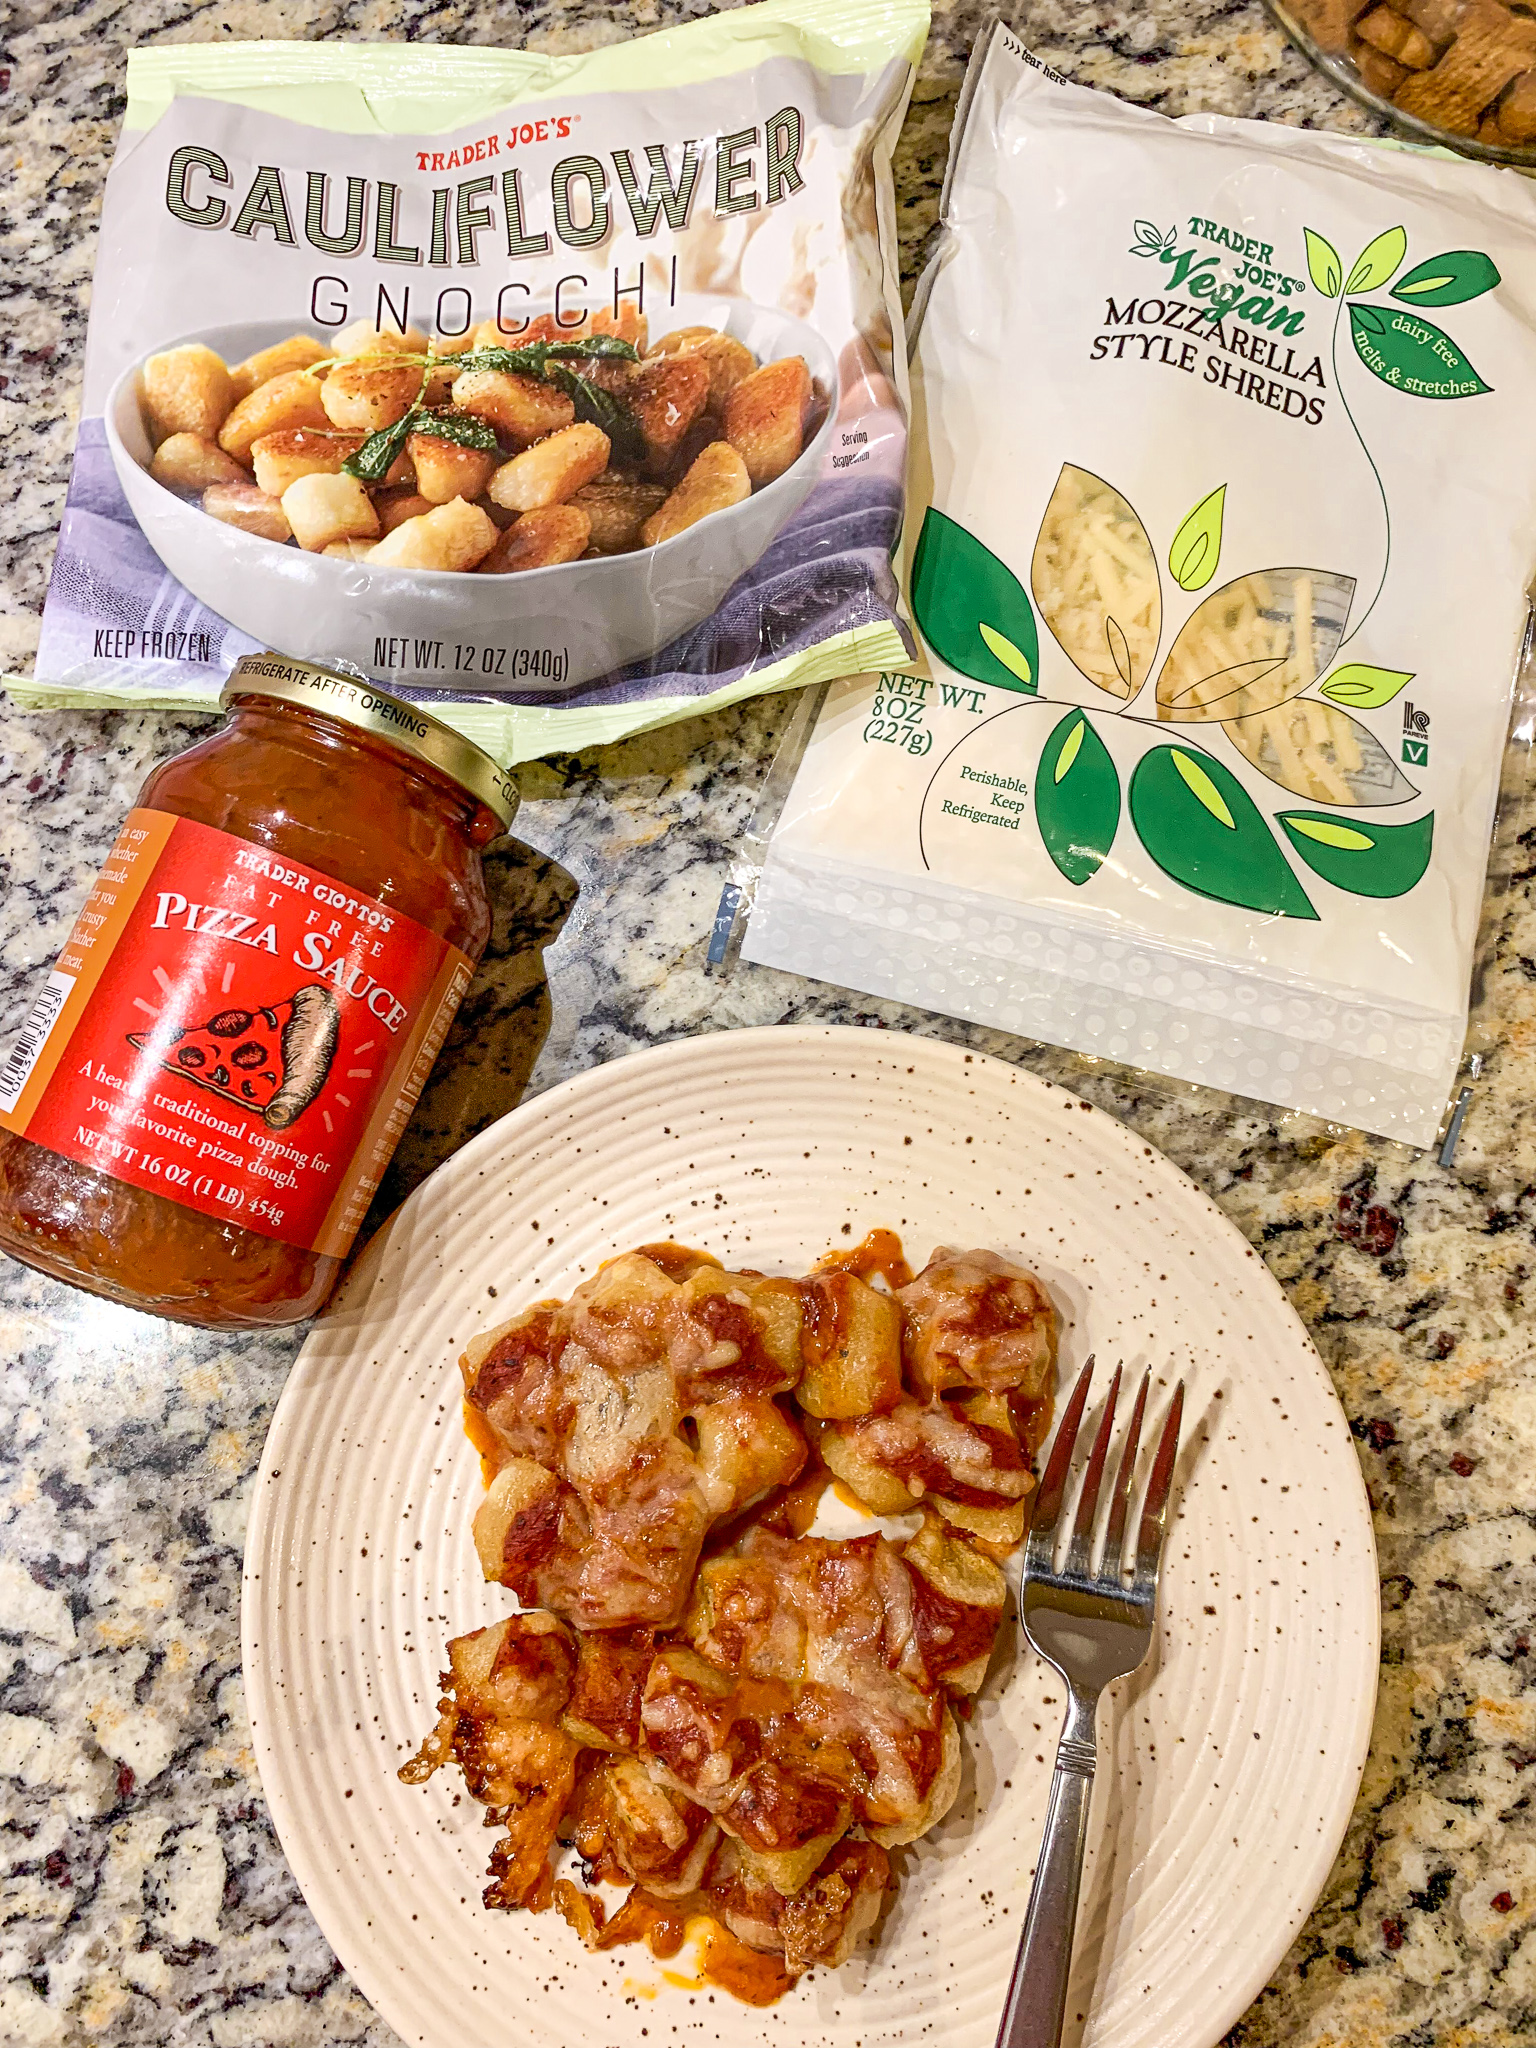 cauliflower gnocchi, pizza sauce, vegan, trader joes, gluten free, pizza sauce, dairy free vegetarian healthy easy three ingredient